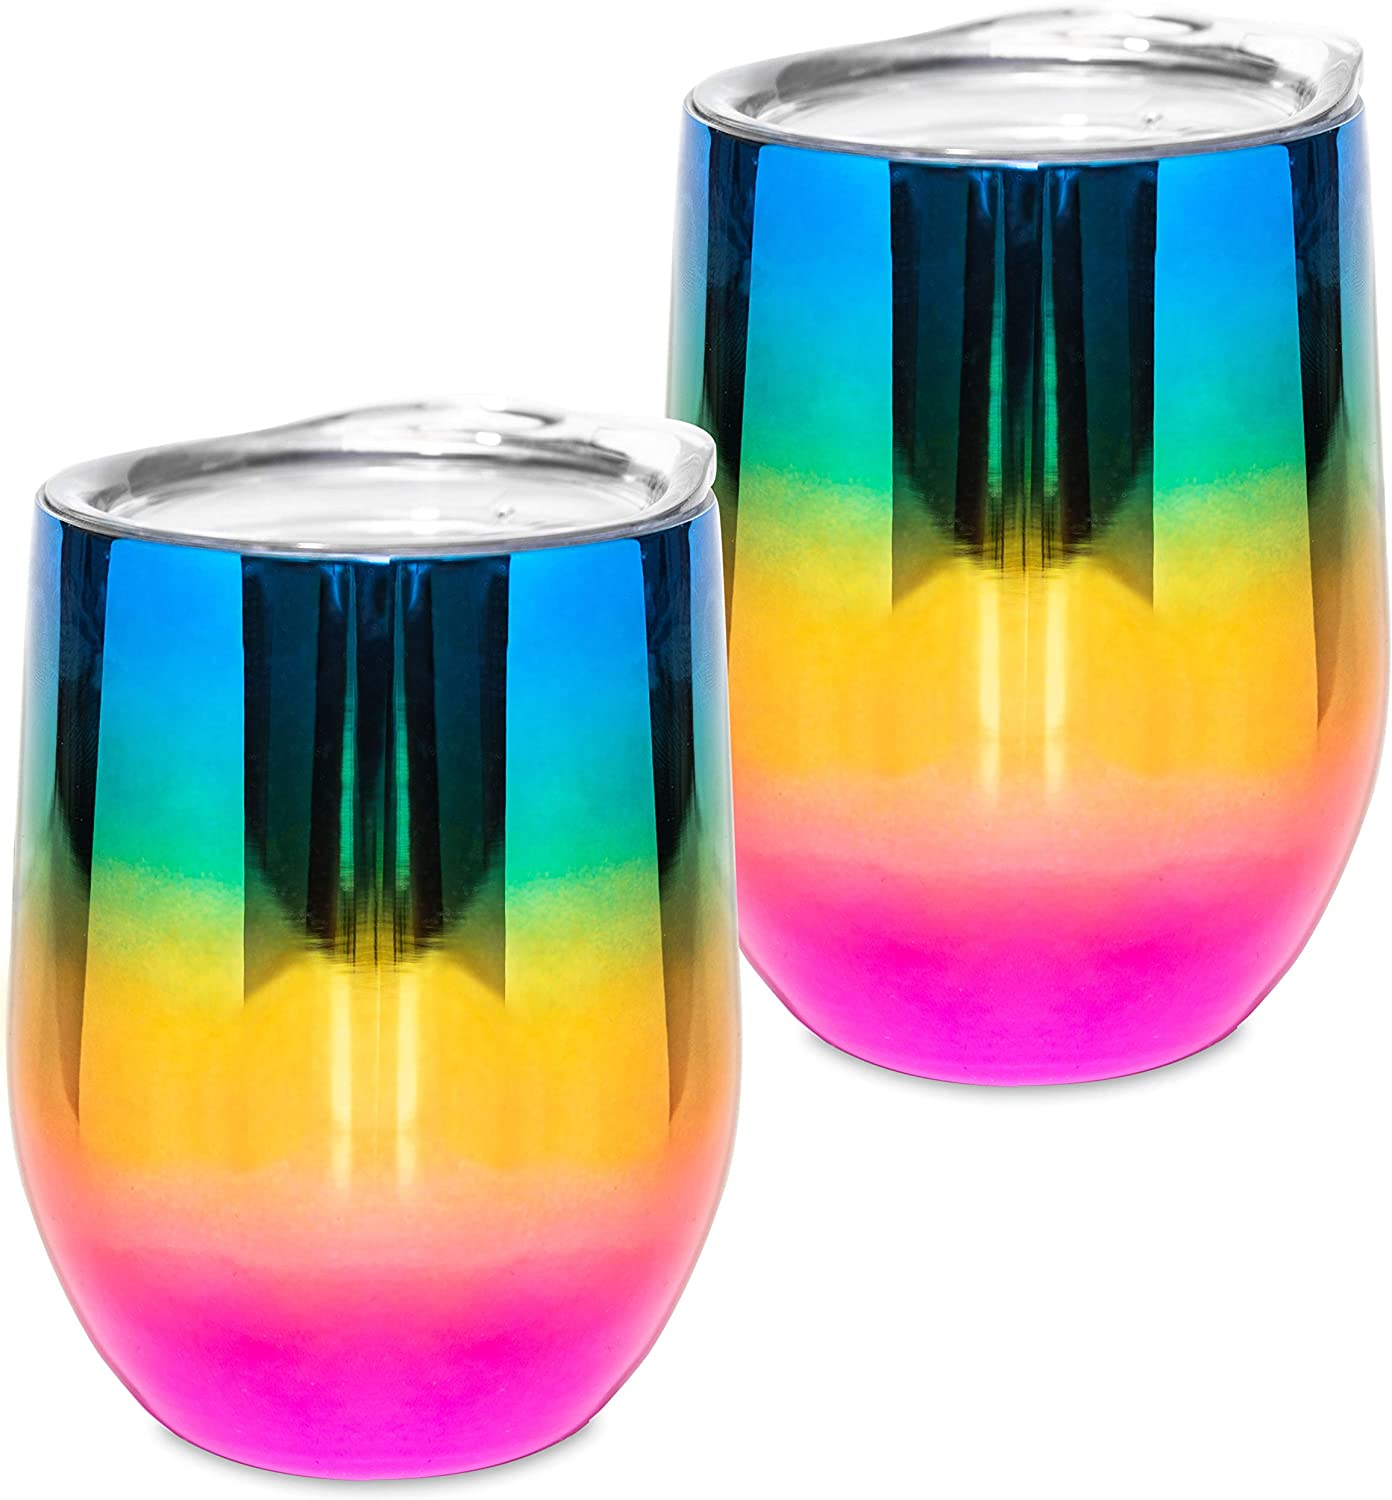 Wine Glass - Stainless Steel Tumbler with Lid – Double Wall Vacuum Insulated Cup - Keep Wine, Coffee, Beverage, Champagne, Cocktails colder or warm -12 oz- Set of 2